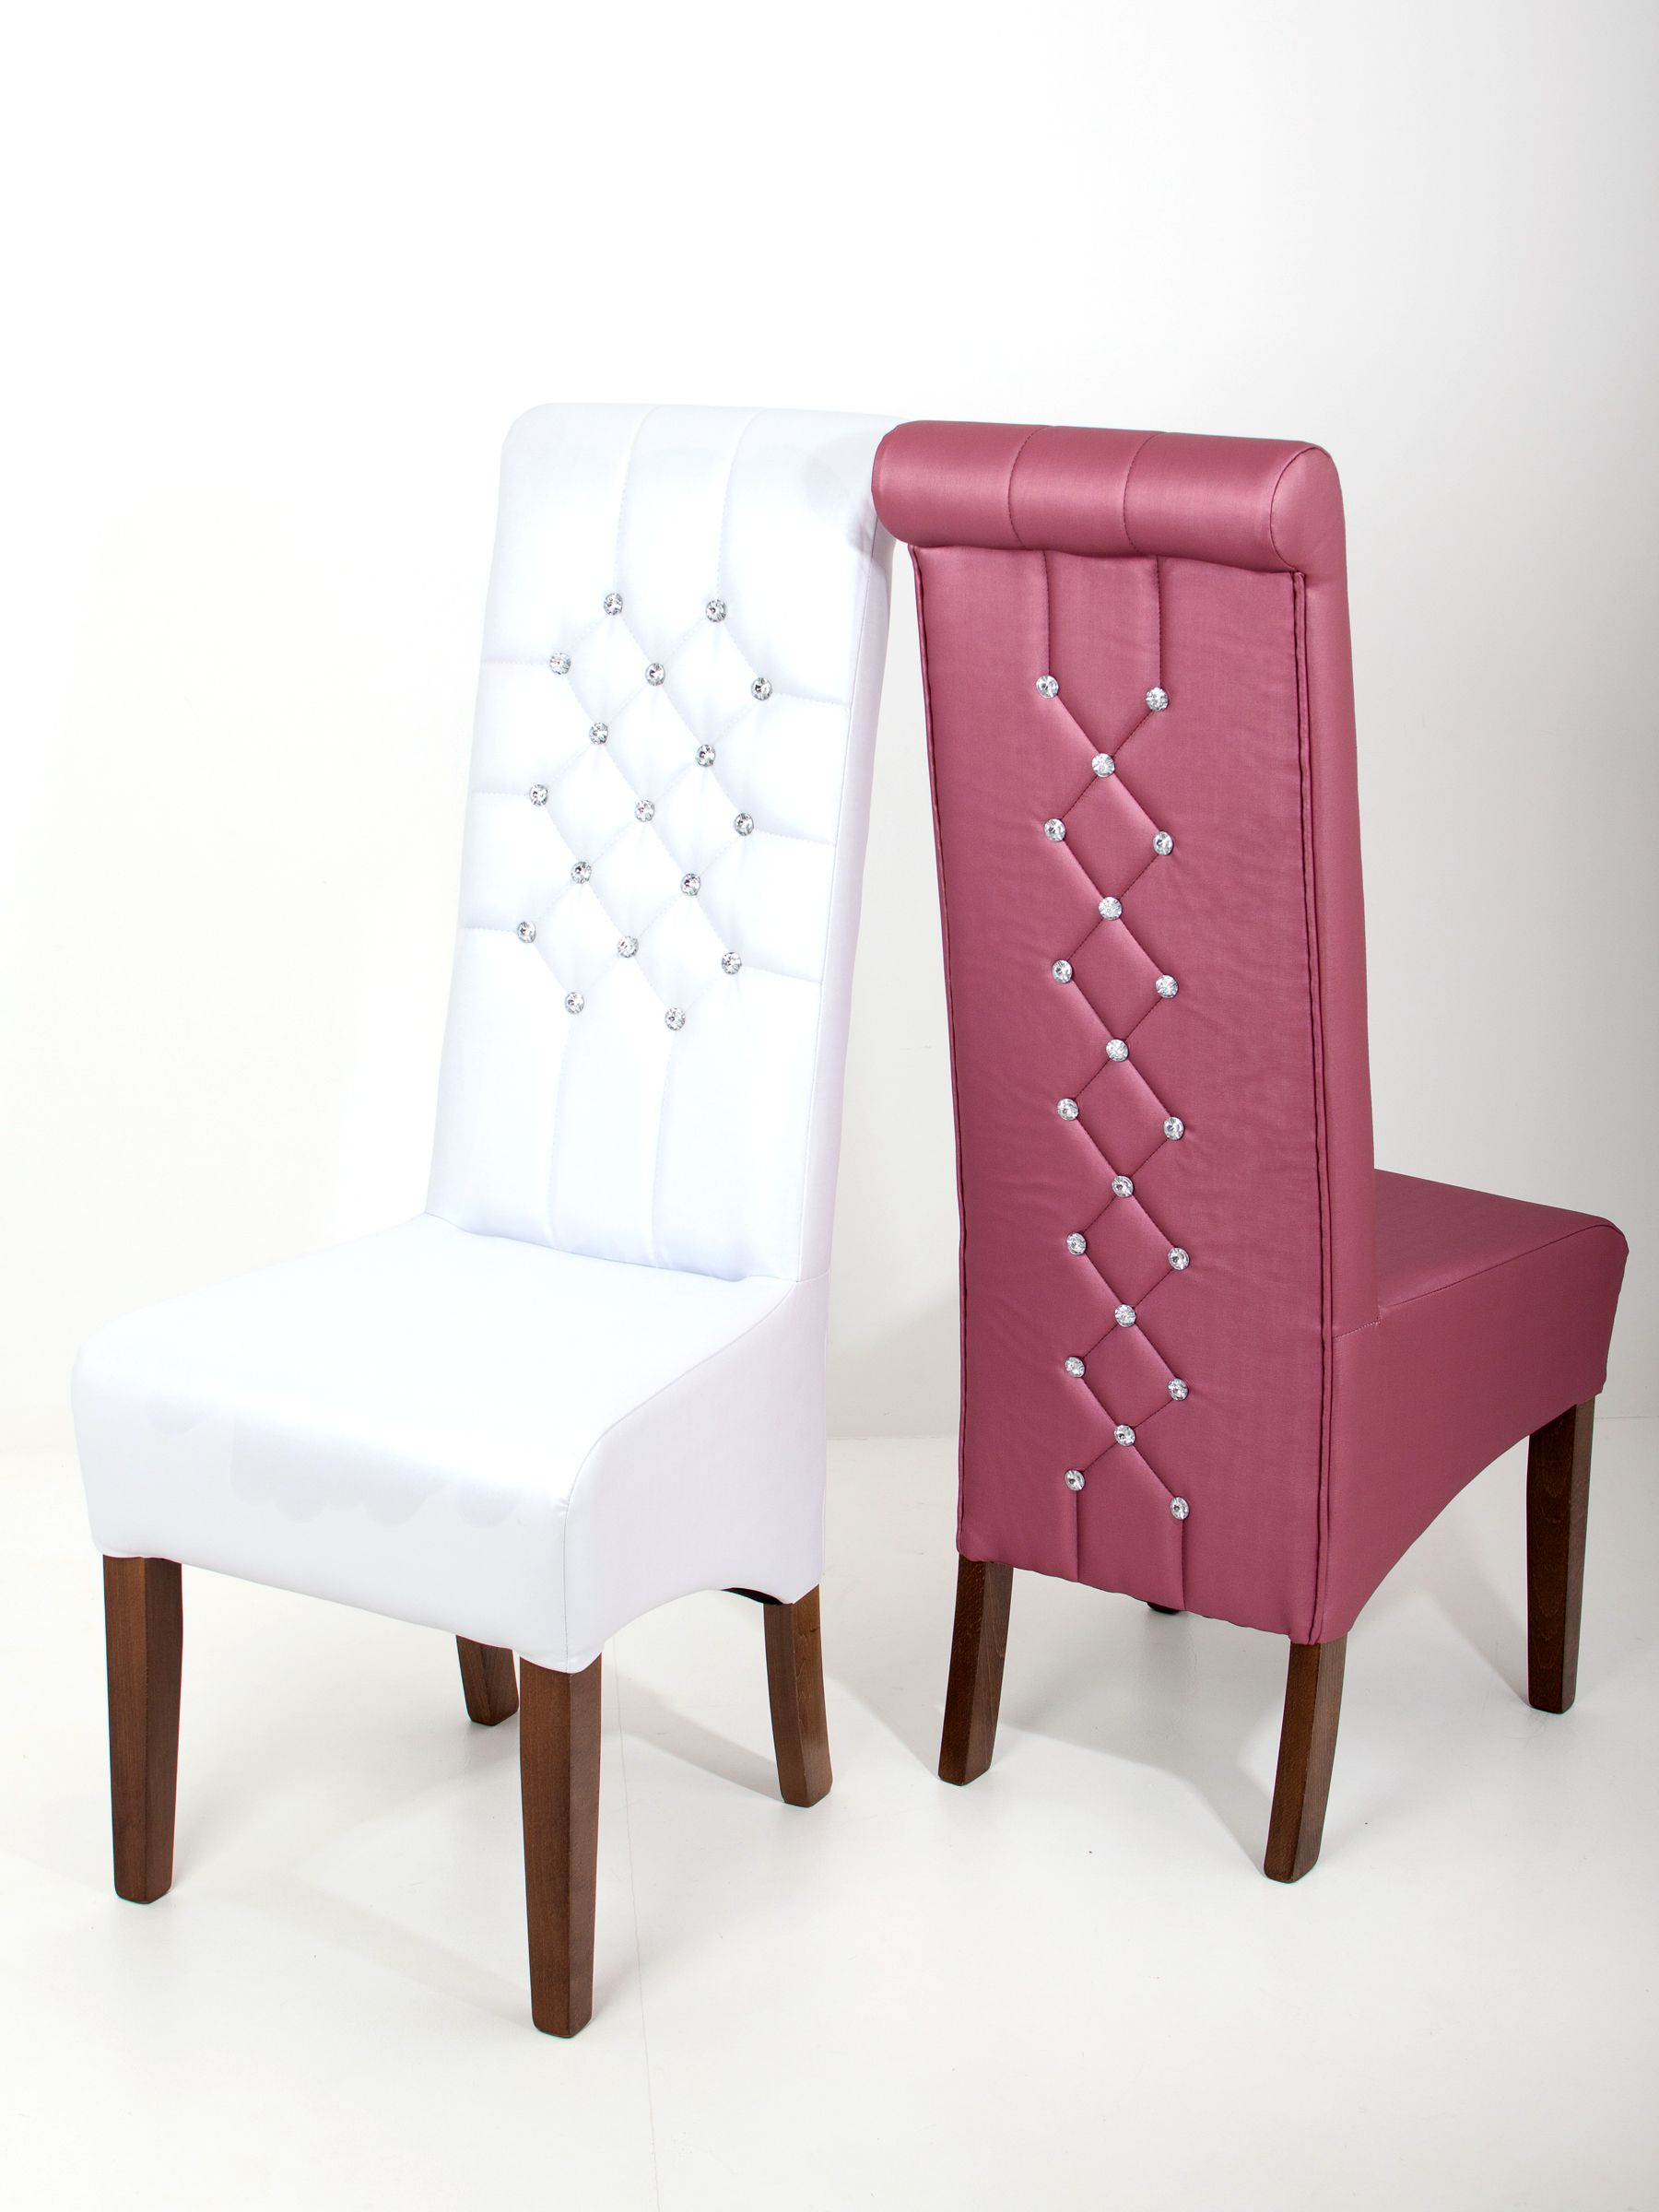 Pink & white leather, high backed chair featuring corset